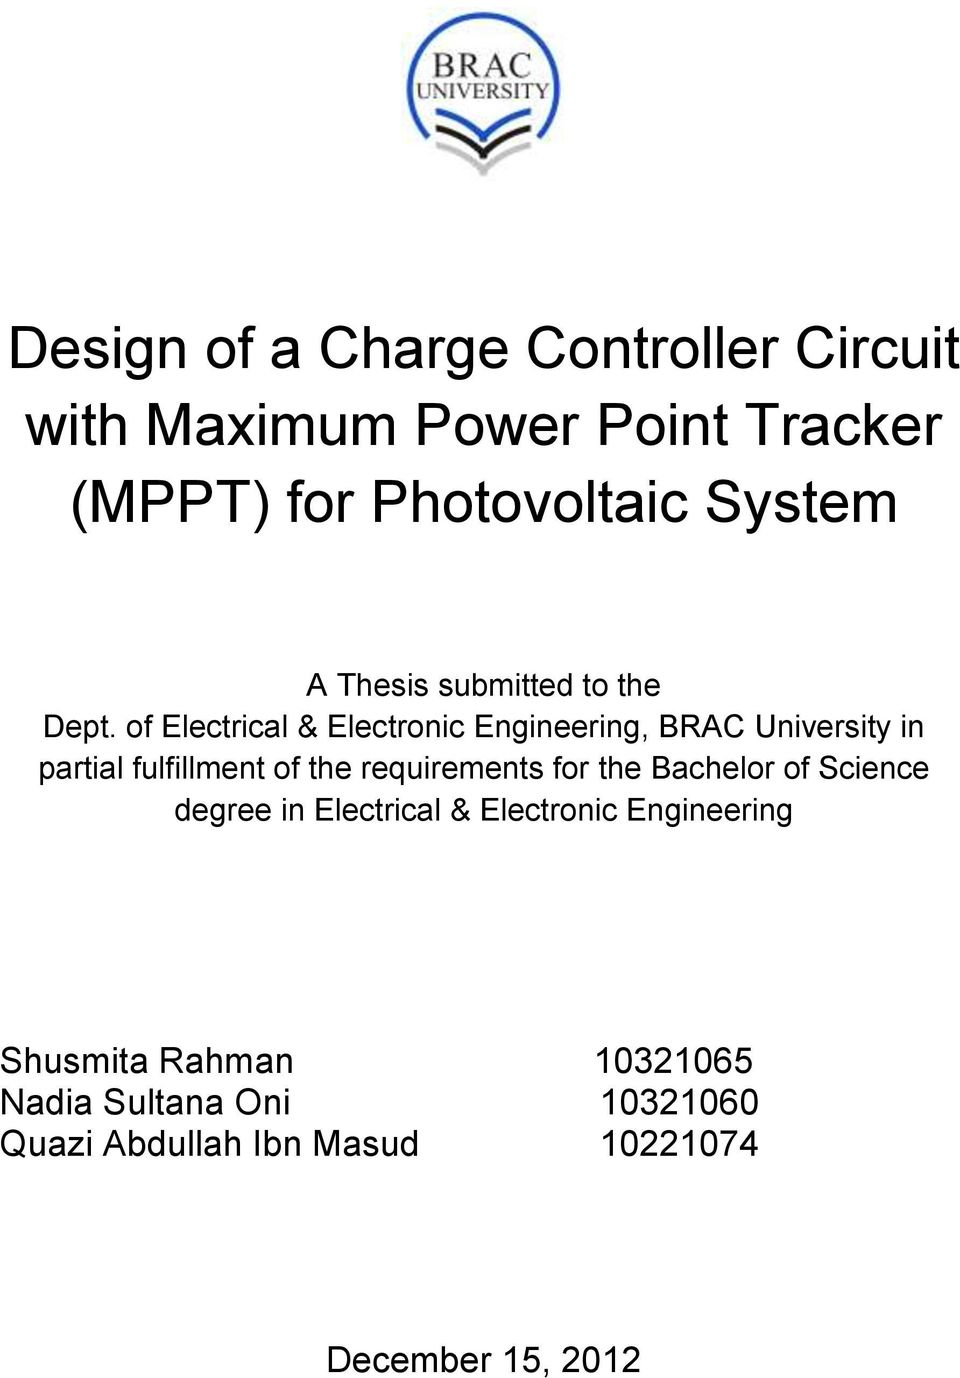 Design Of A Charge Controller Circuit With Maximum Power Point Programmable Tracking For Photovoltaic Electrical Electronic Engineering Brac University In Partial Fulfillment The Requirements